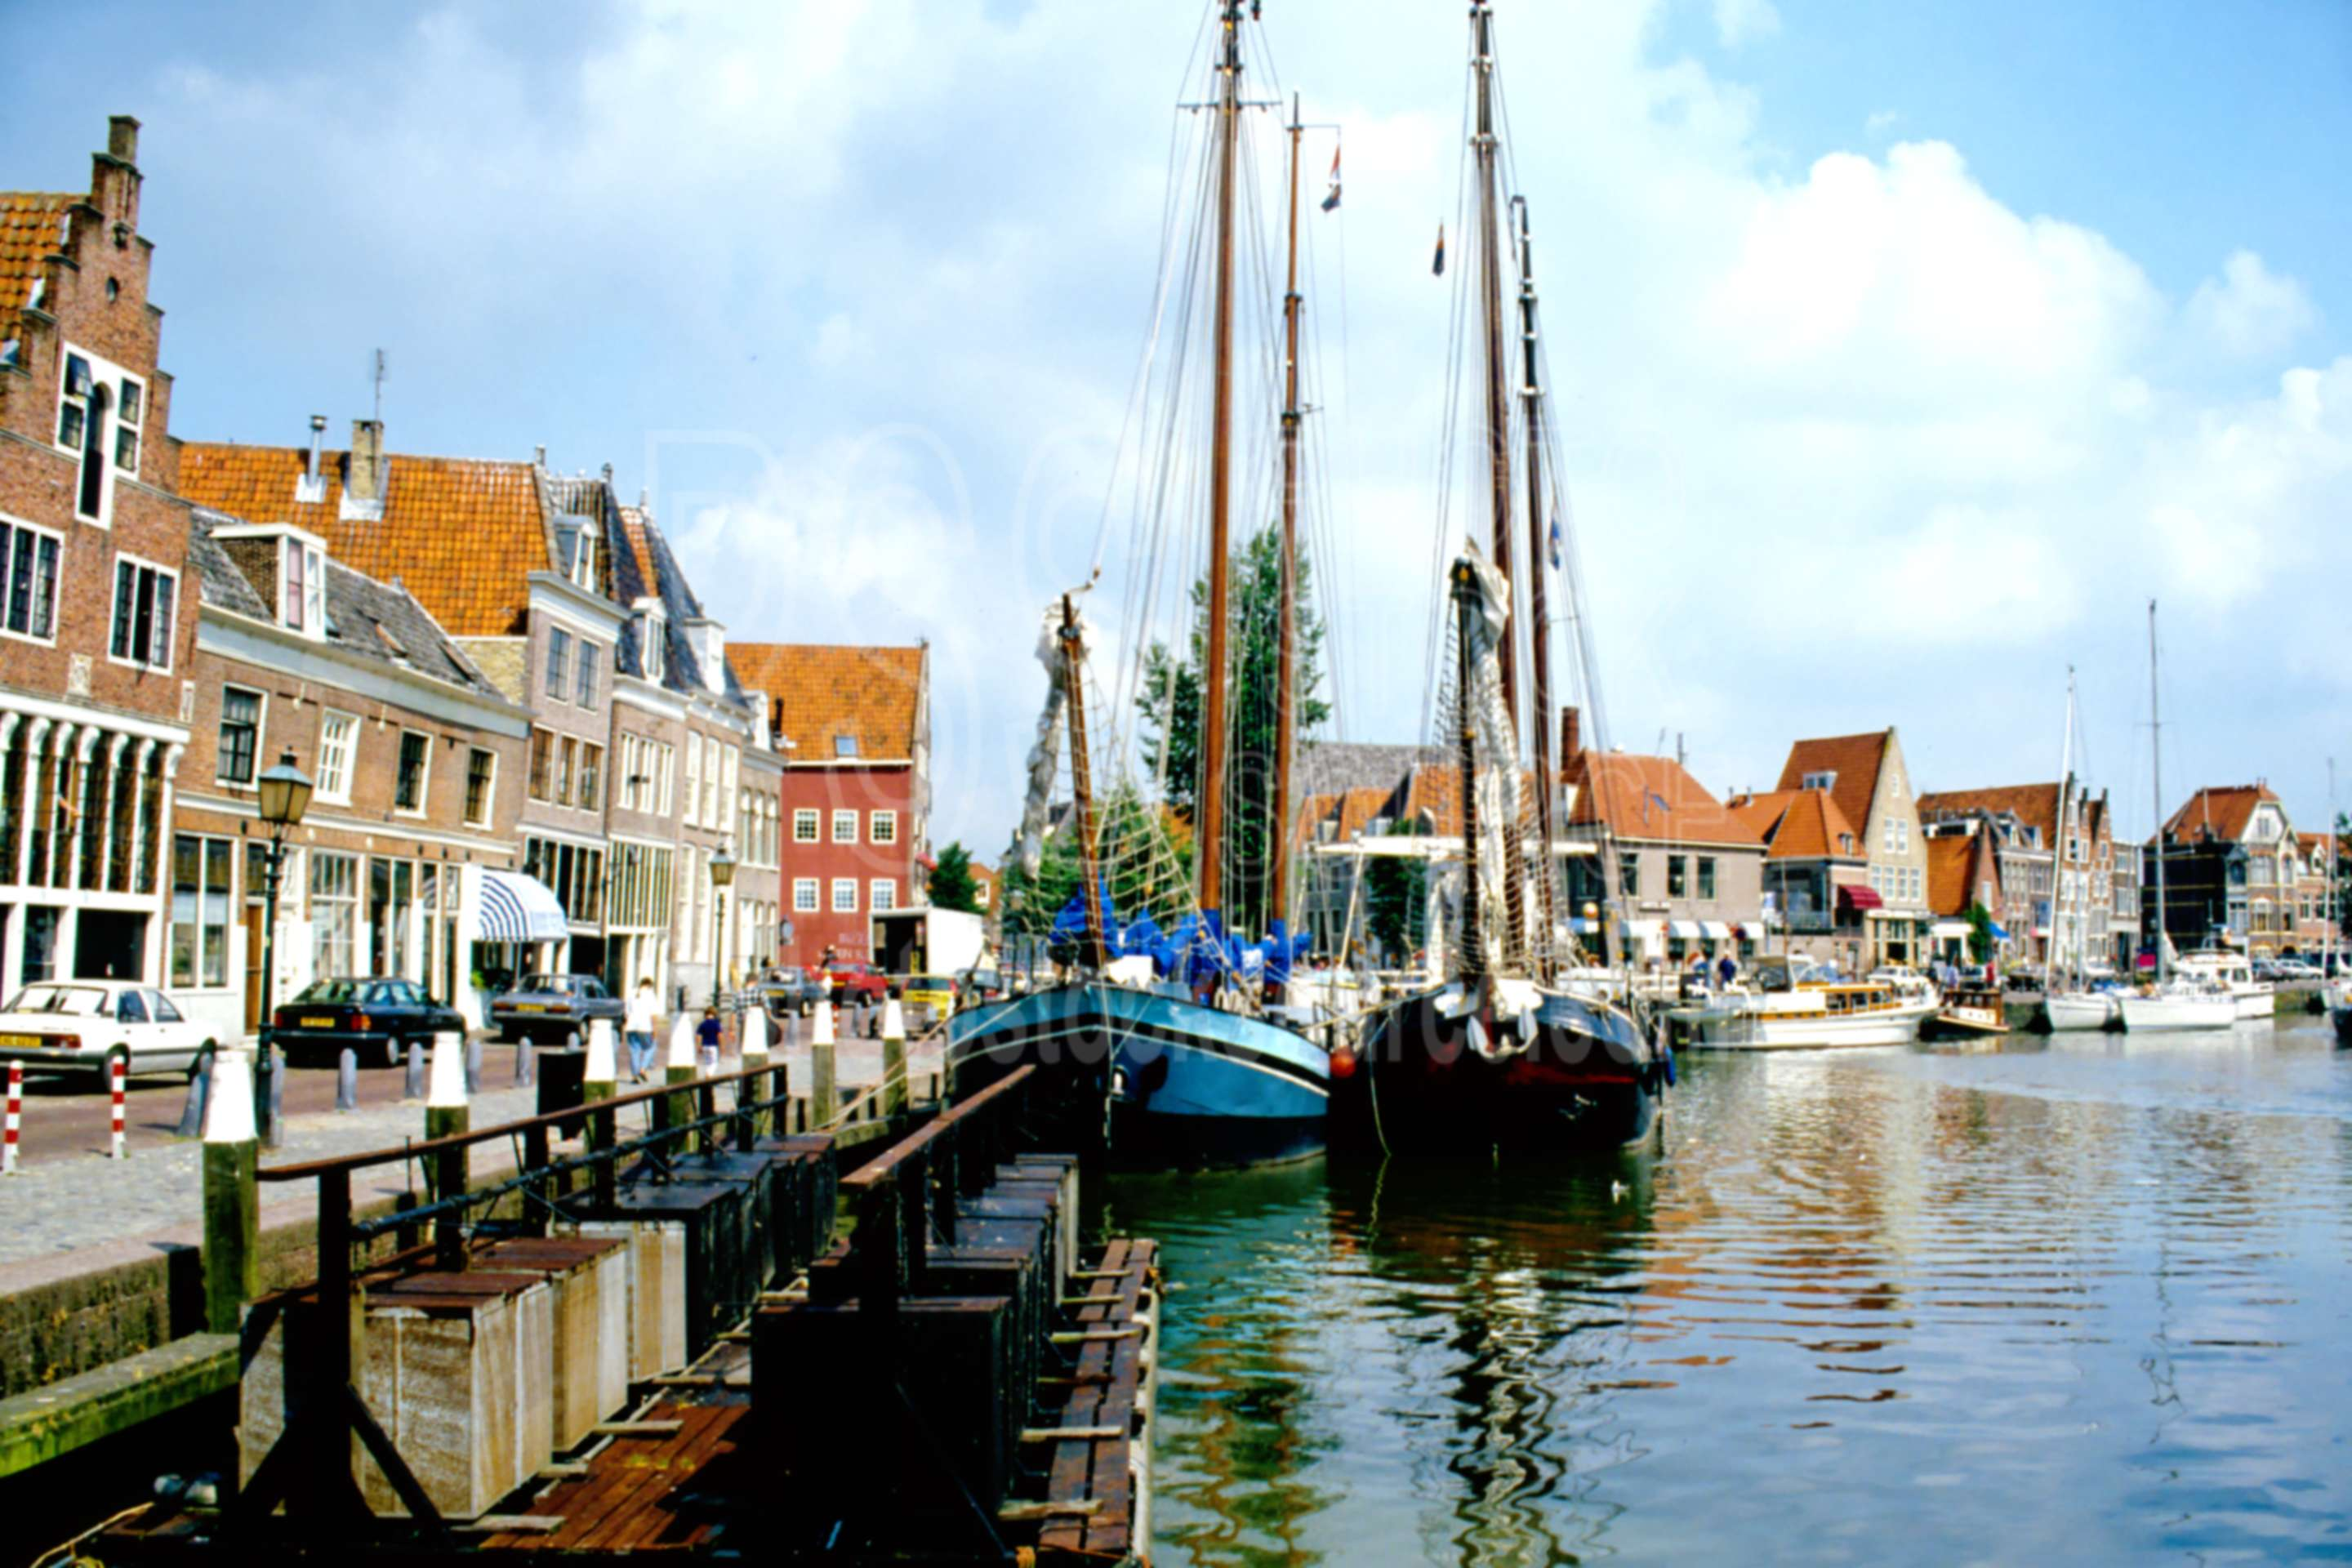 Boat in the Harbor,europe,harbor,holland,wharf,boats